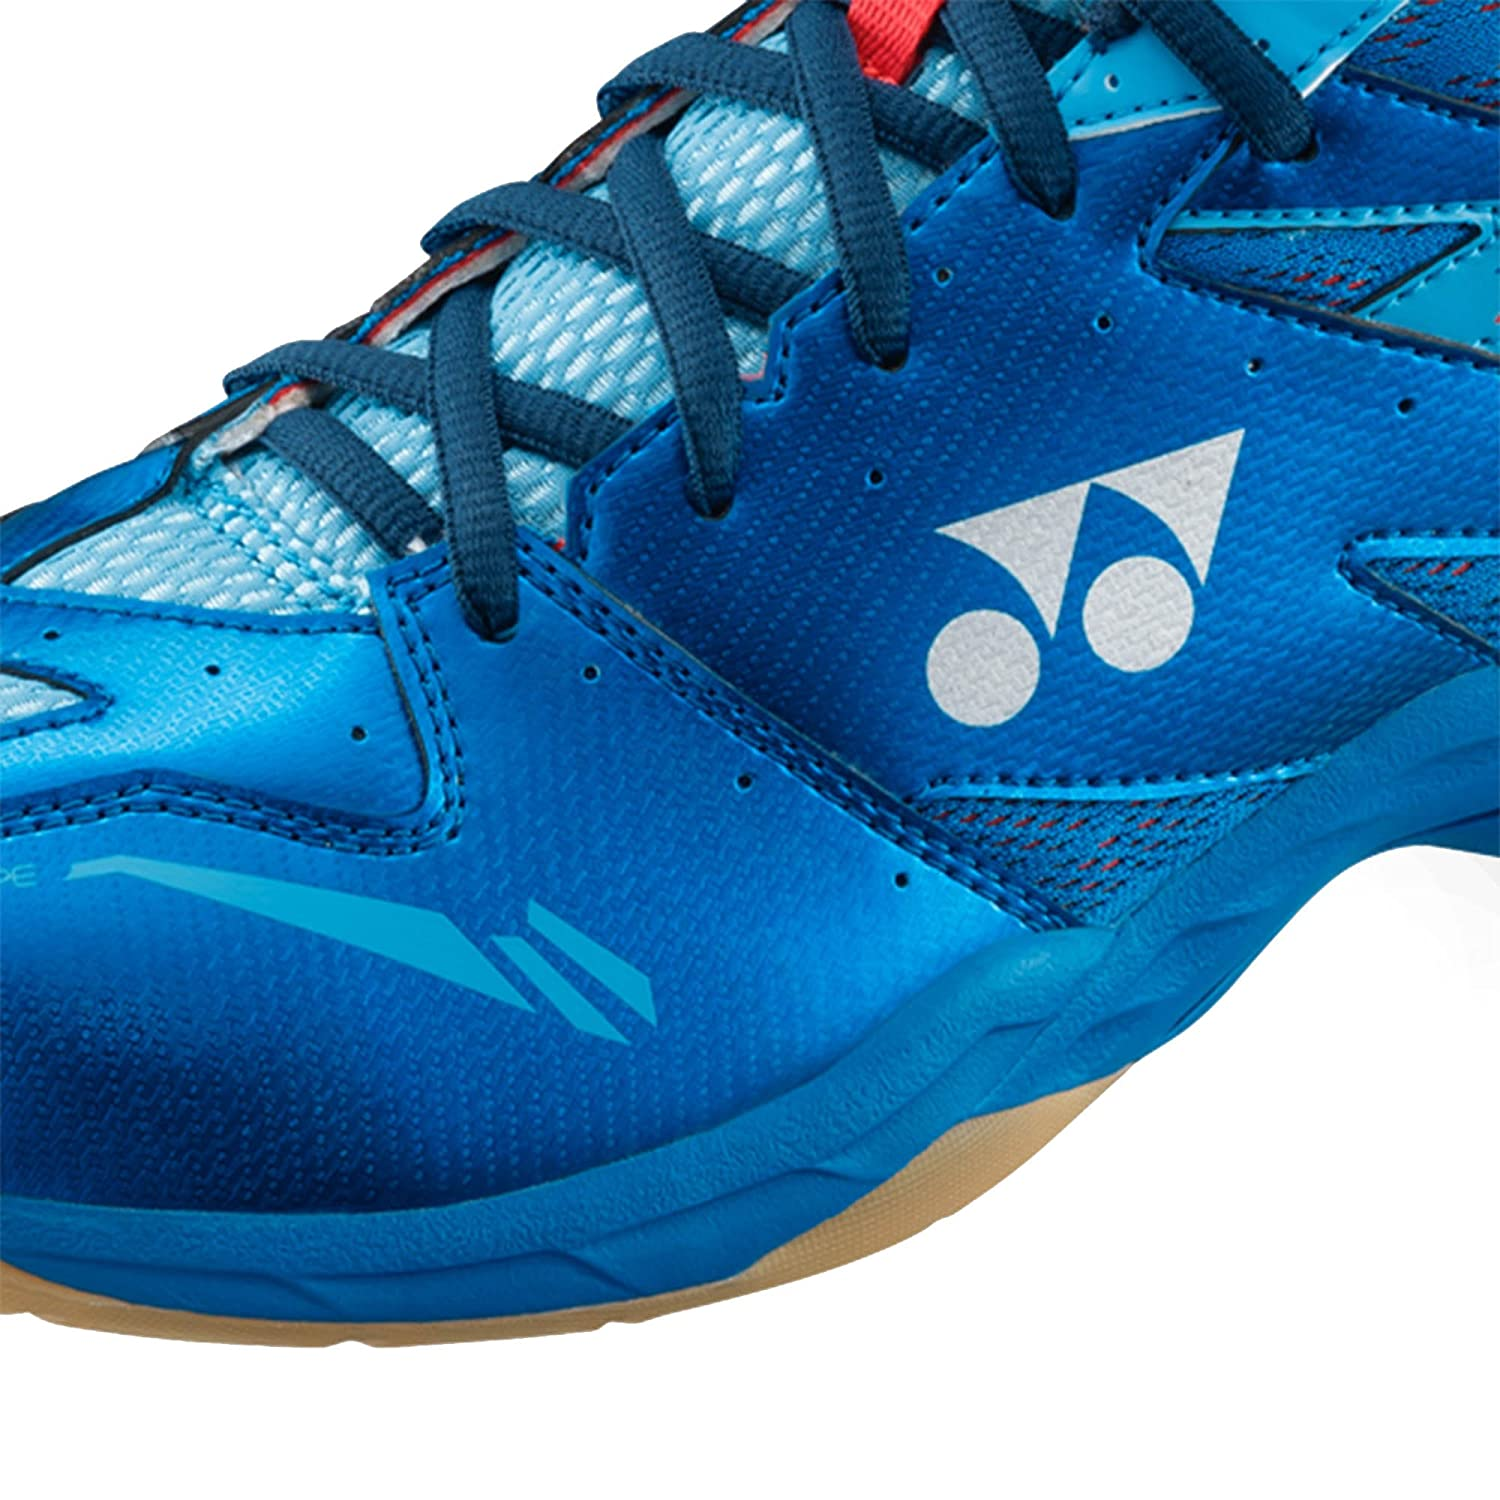 "Yonex Yonex Yonex ""Power Cushion 35 Badmintonschuhe für Herren Herren blau 10.5 UK 5a5a77"